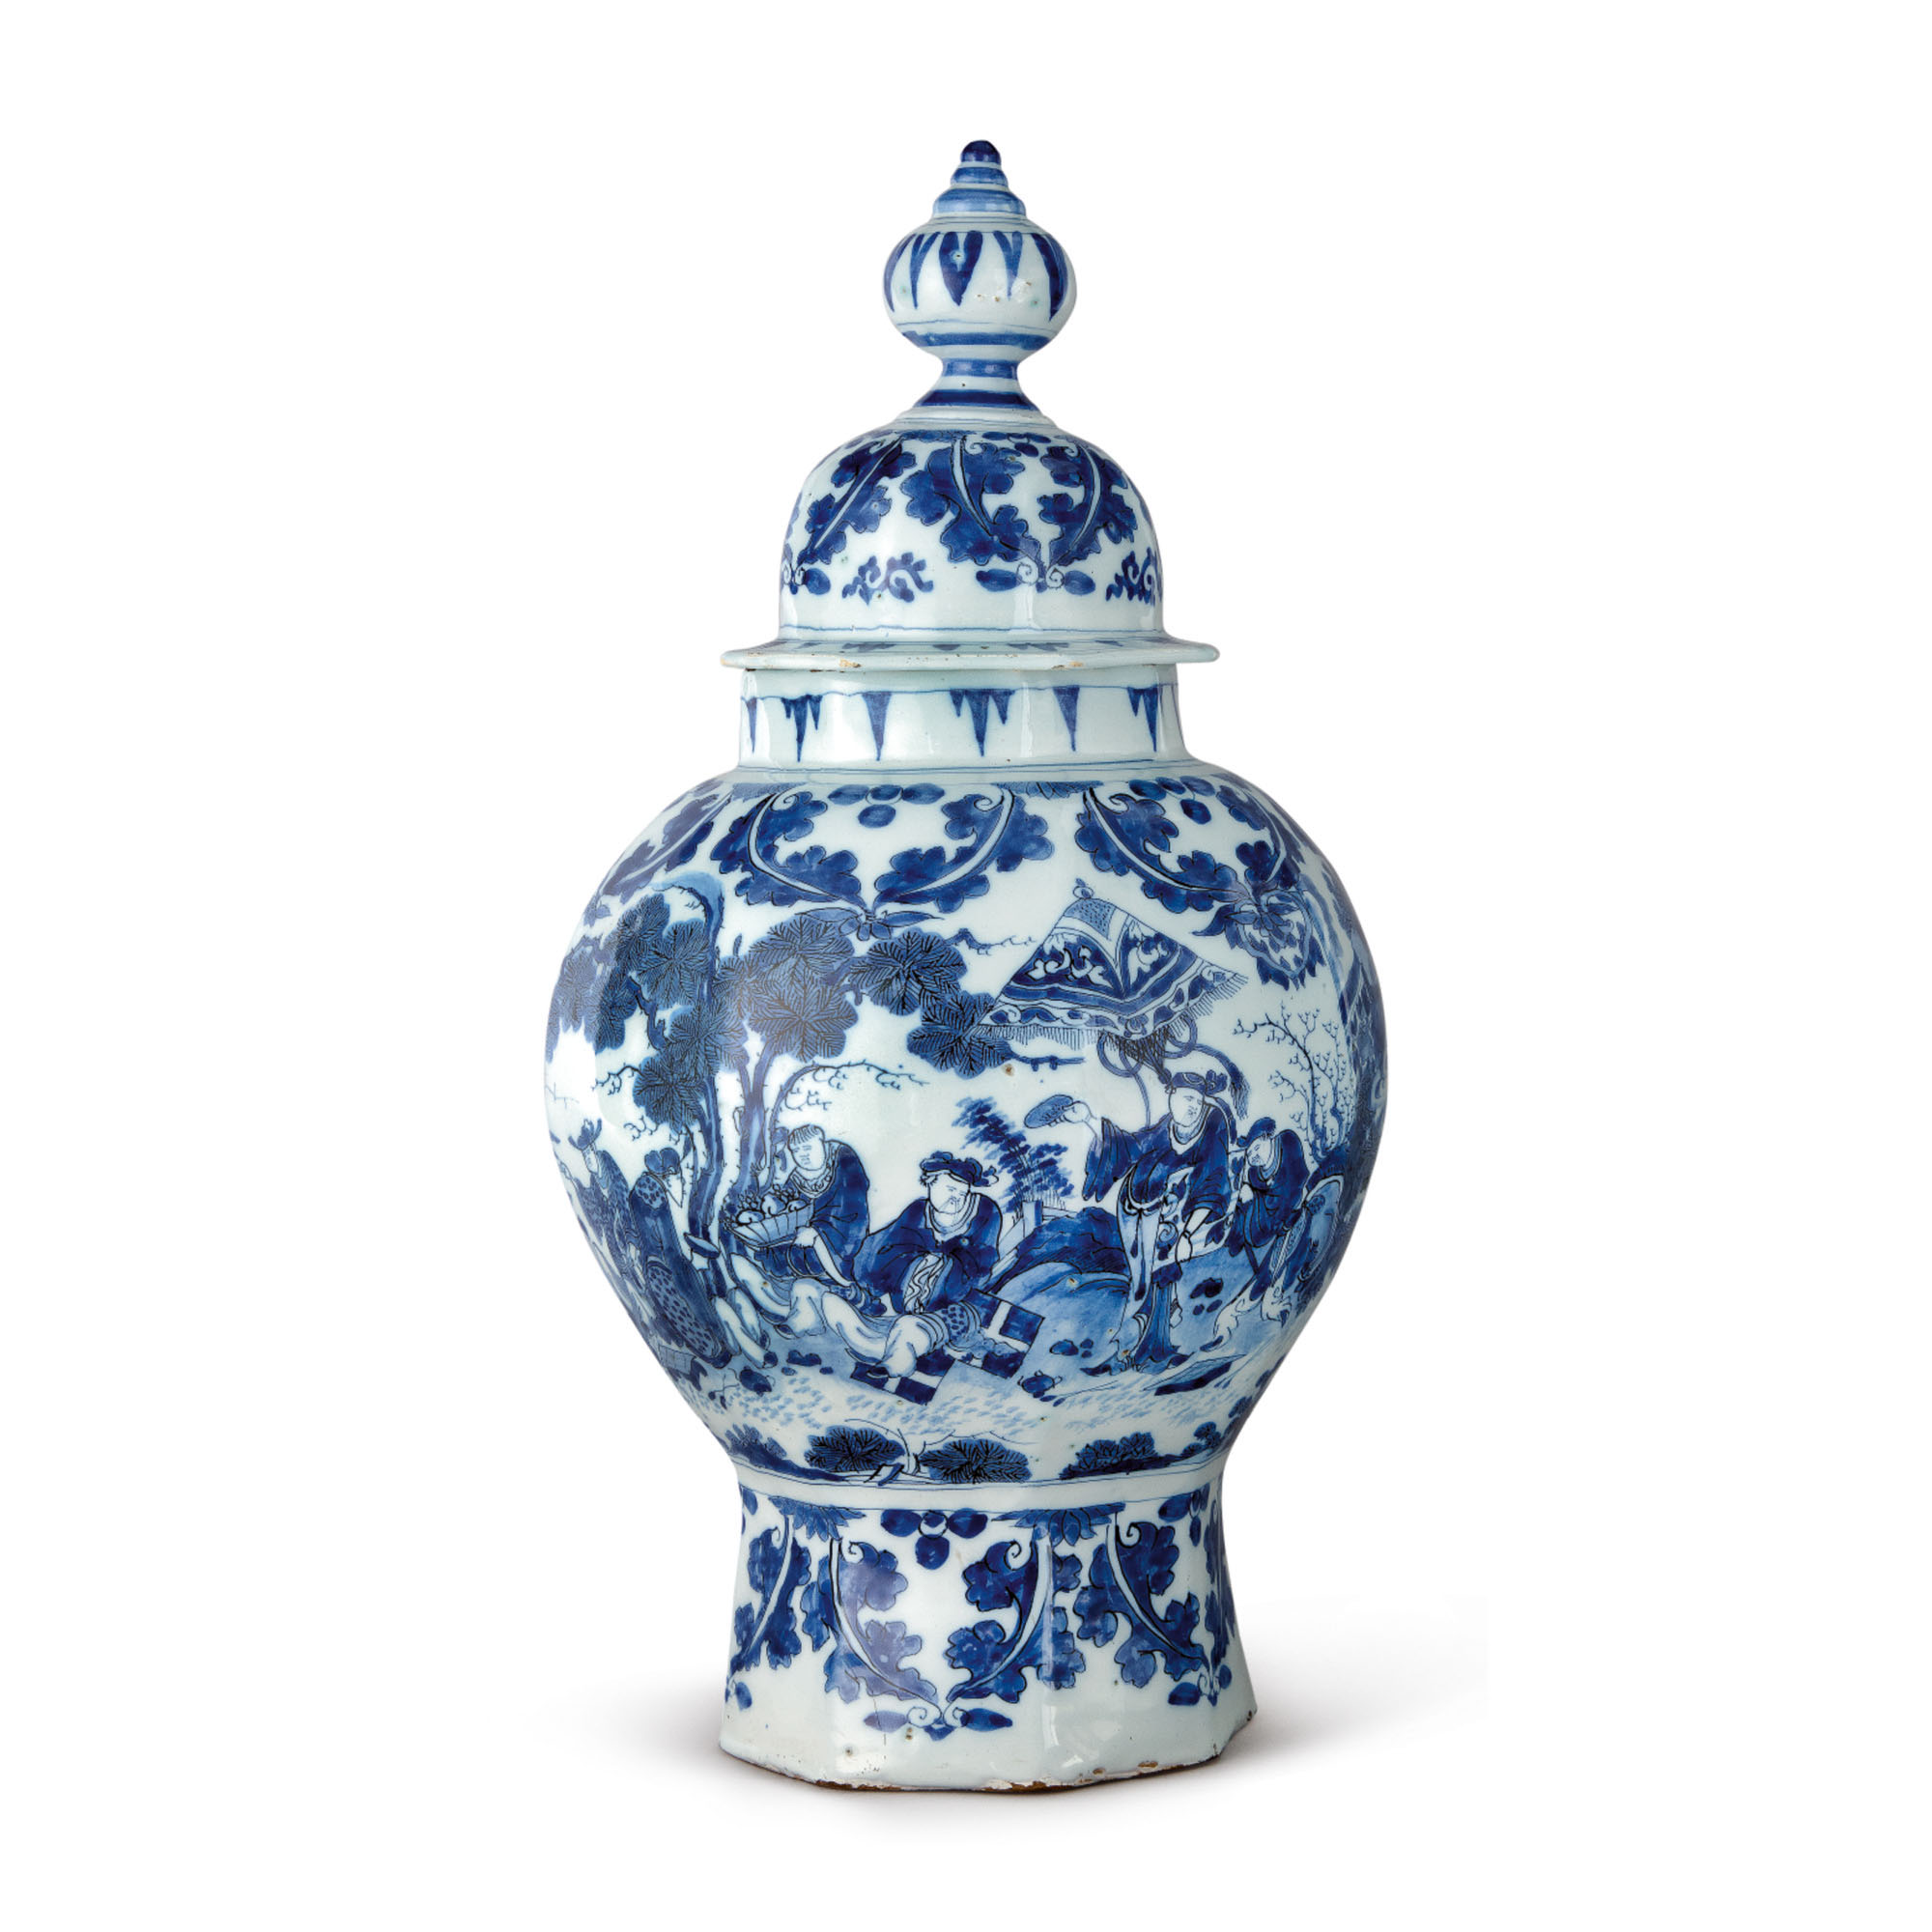 A DUTCH DELFT BLUE AND WHITE OCTAGAONAL BALUSTER VASE AND COVER, LATE 17TH CENTURY